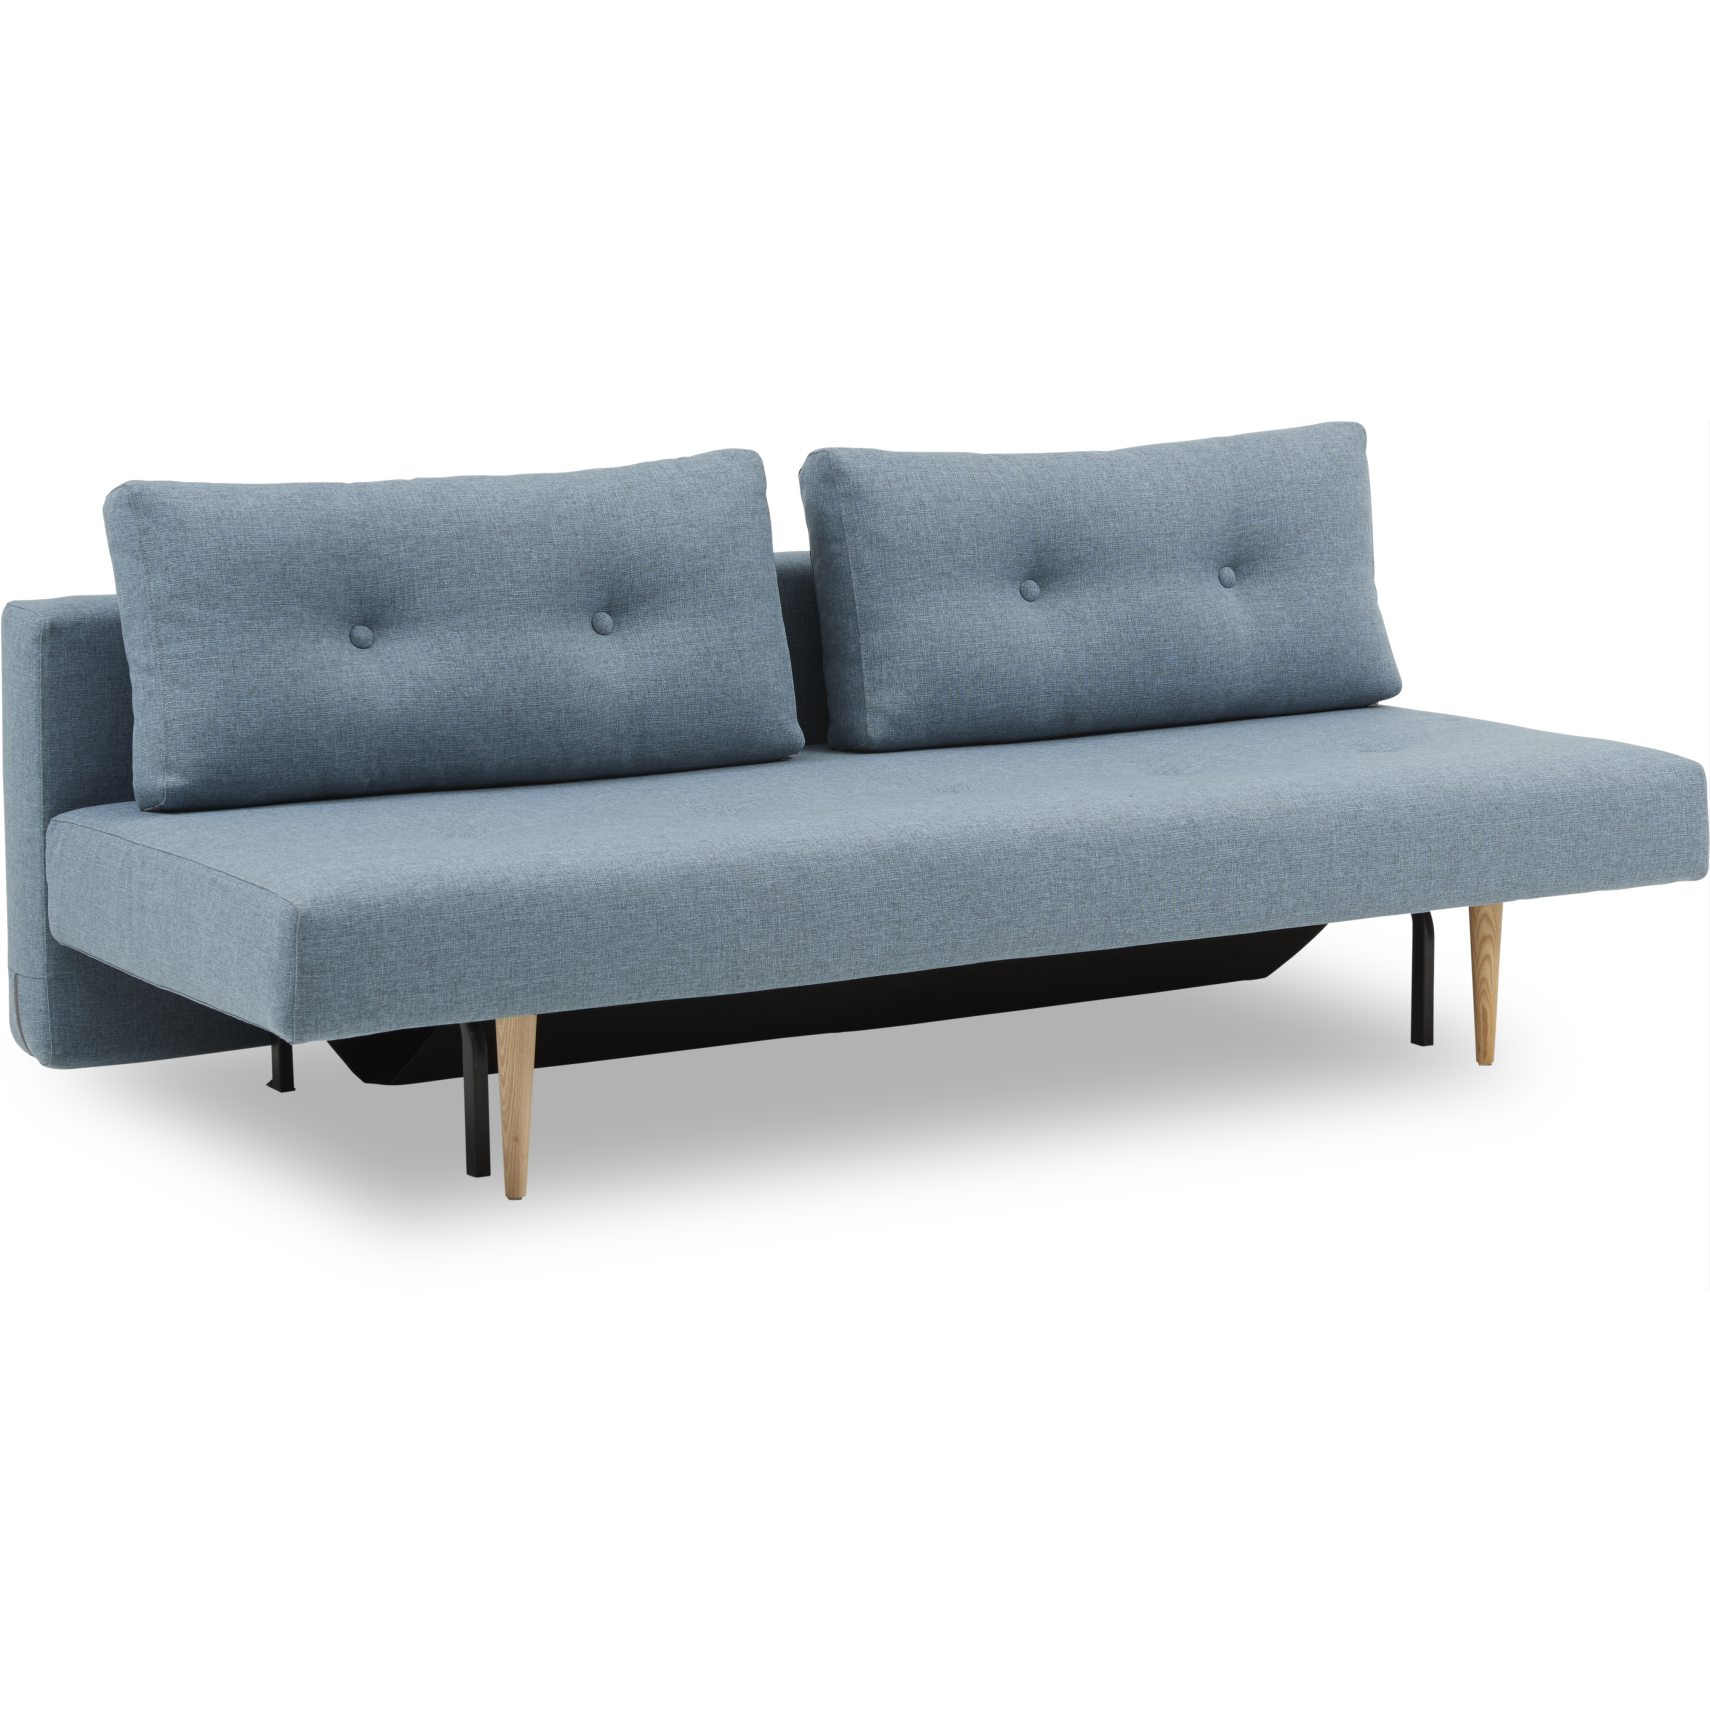 Recast Plus Sovesofa - Mixed Dance 525 Light Blue og styletto ben i lyst træ